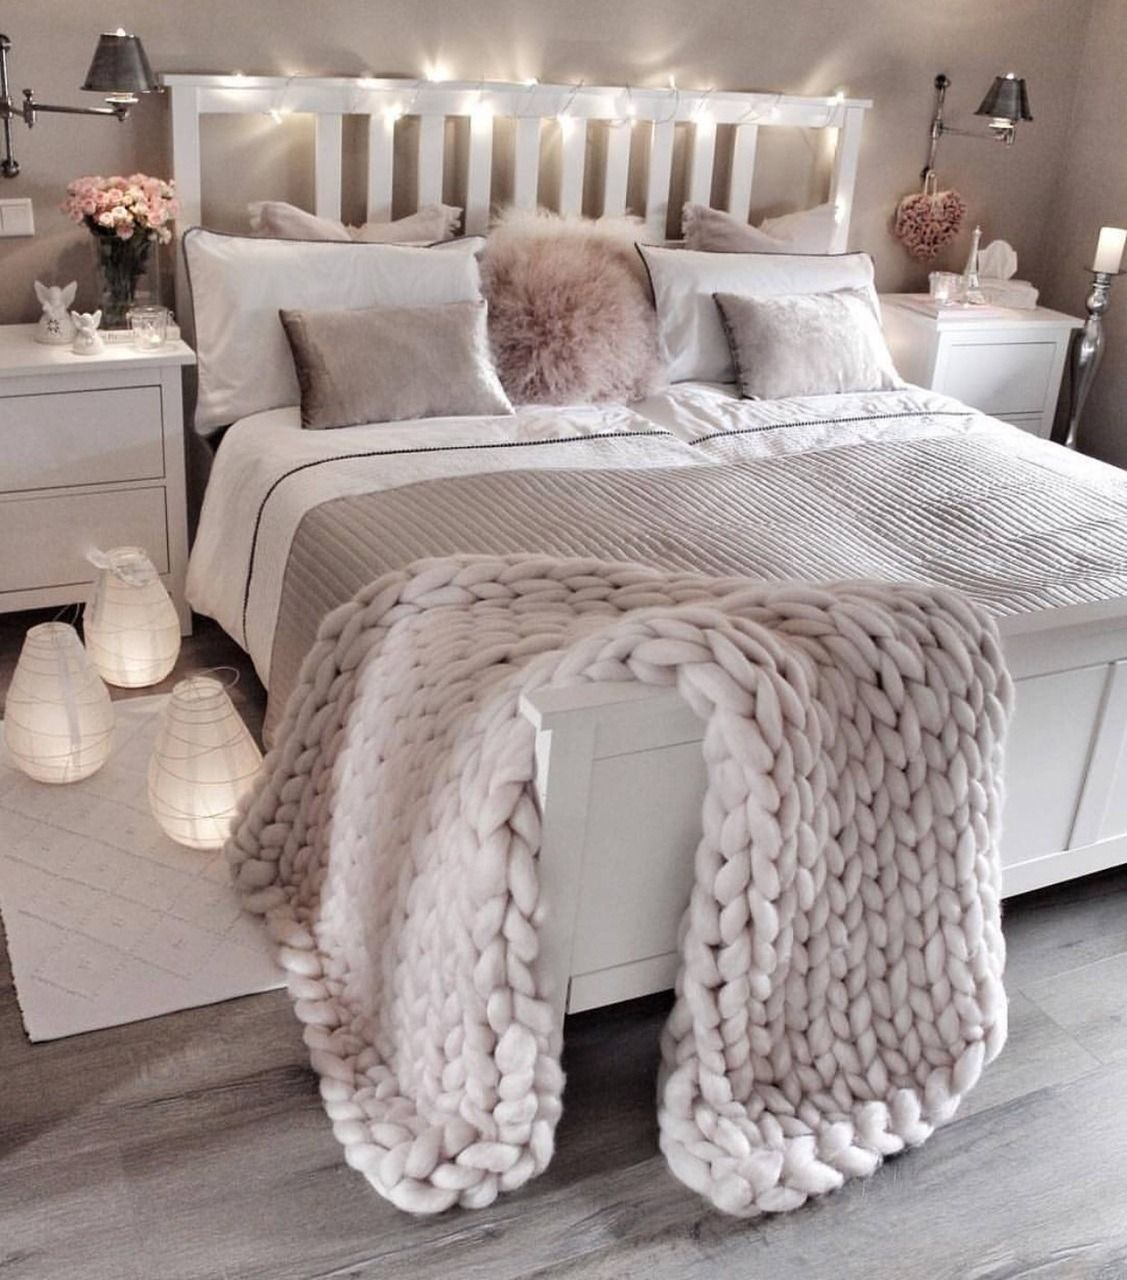 44 Lovely White Bedroom Decorating Ideas For Winter images